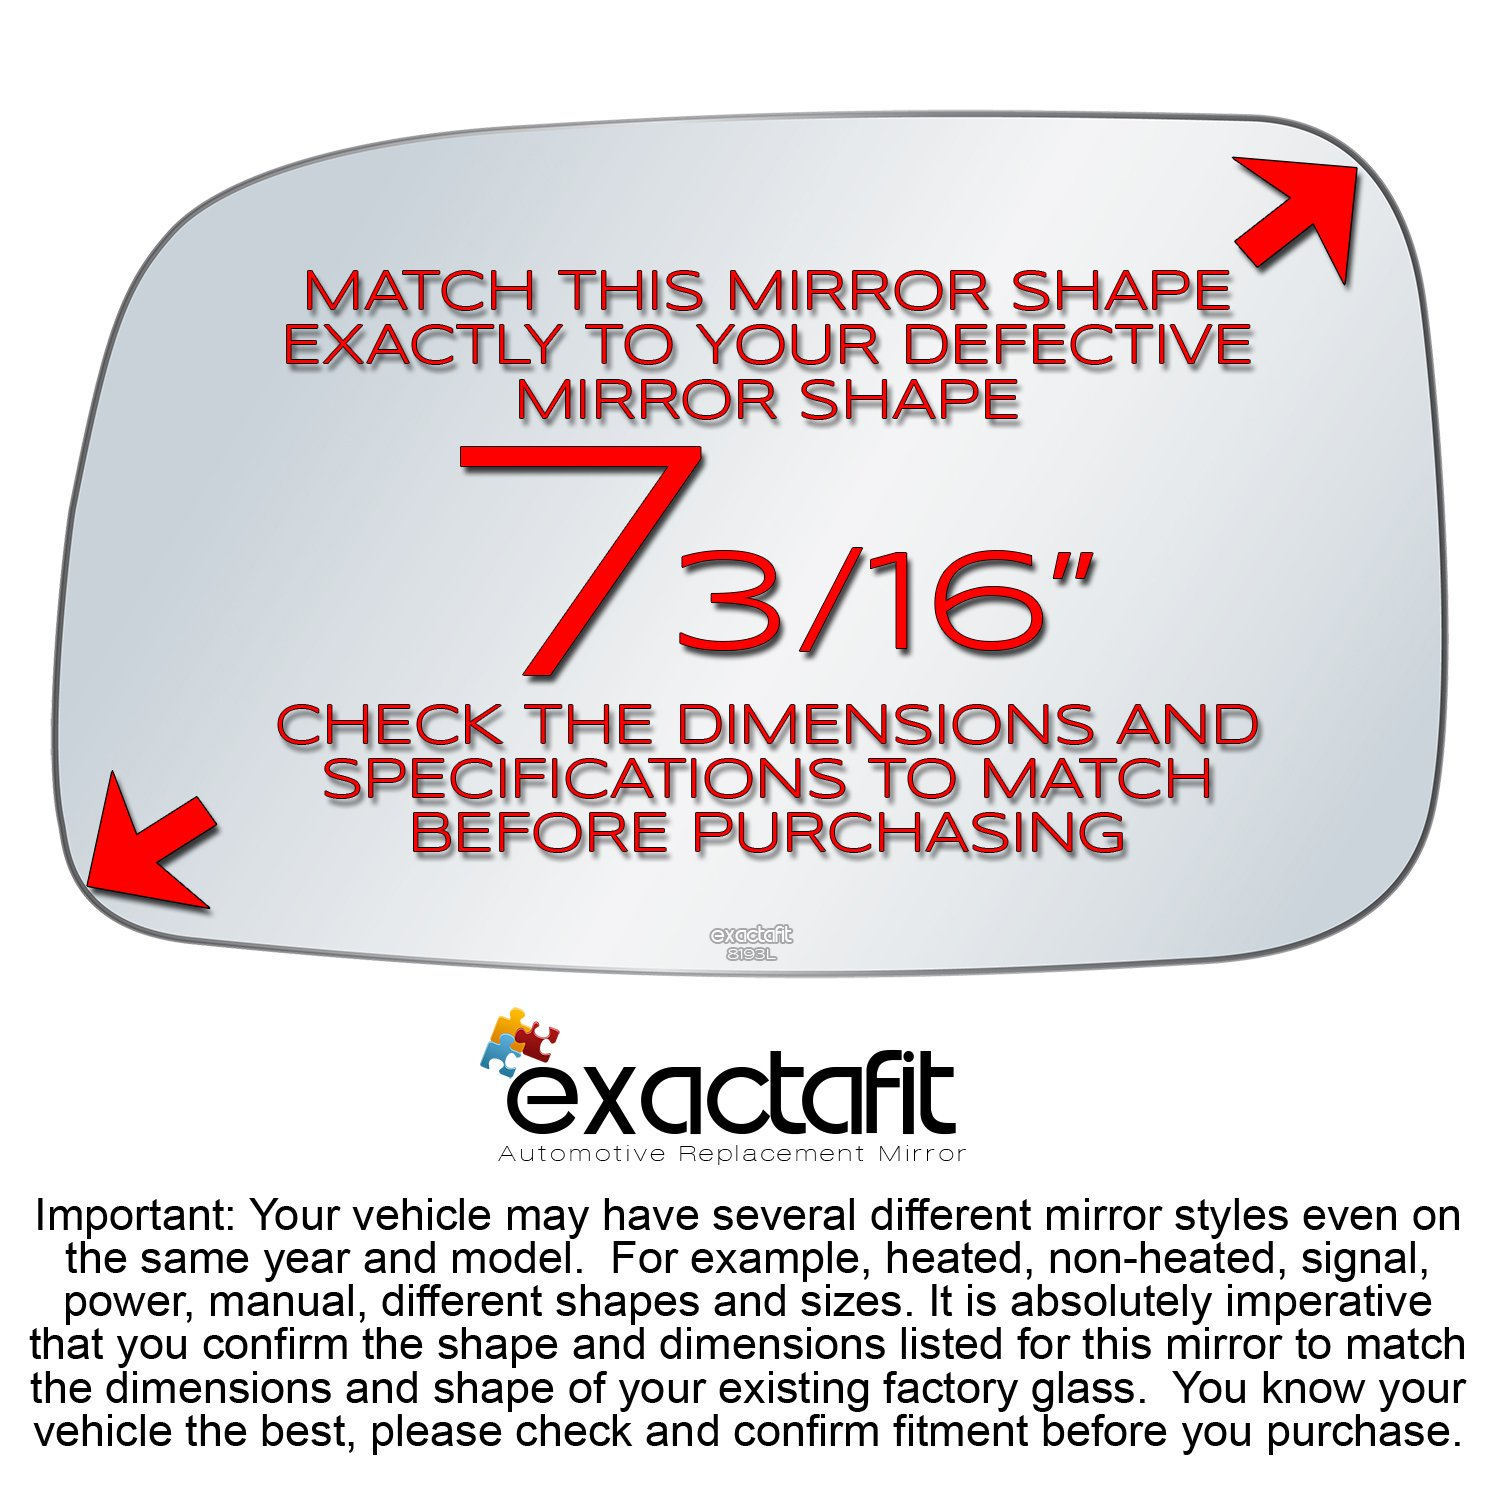 exactafit 8193L Replacement Driver Left Side Mirror Glass Flat Lens fits 2005-2010 Scion tC 2006 xA by Rugged TUFF